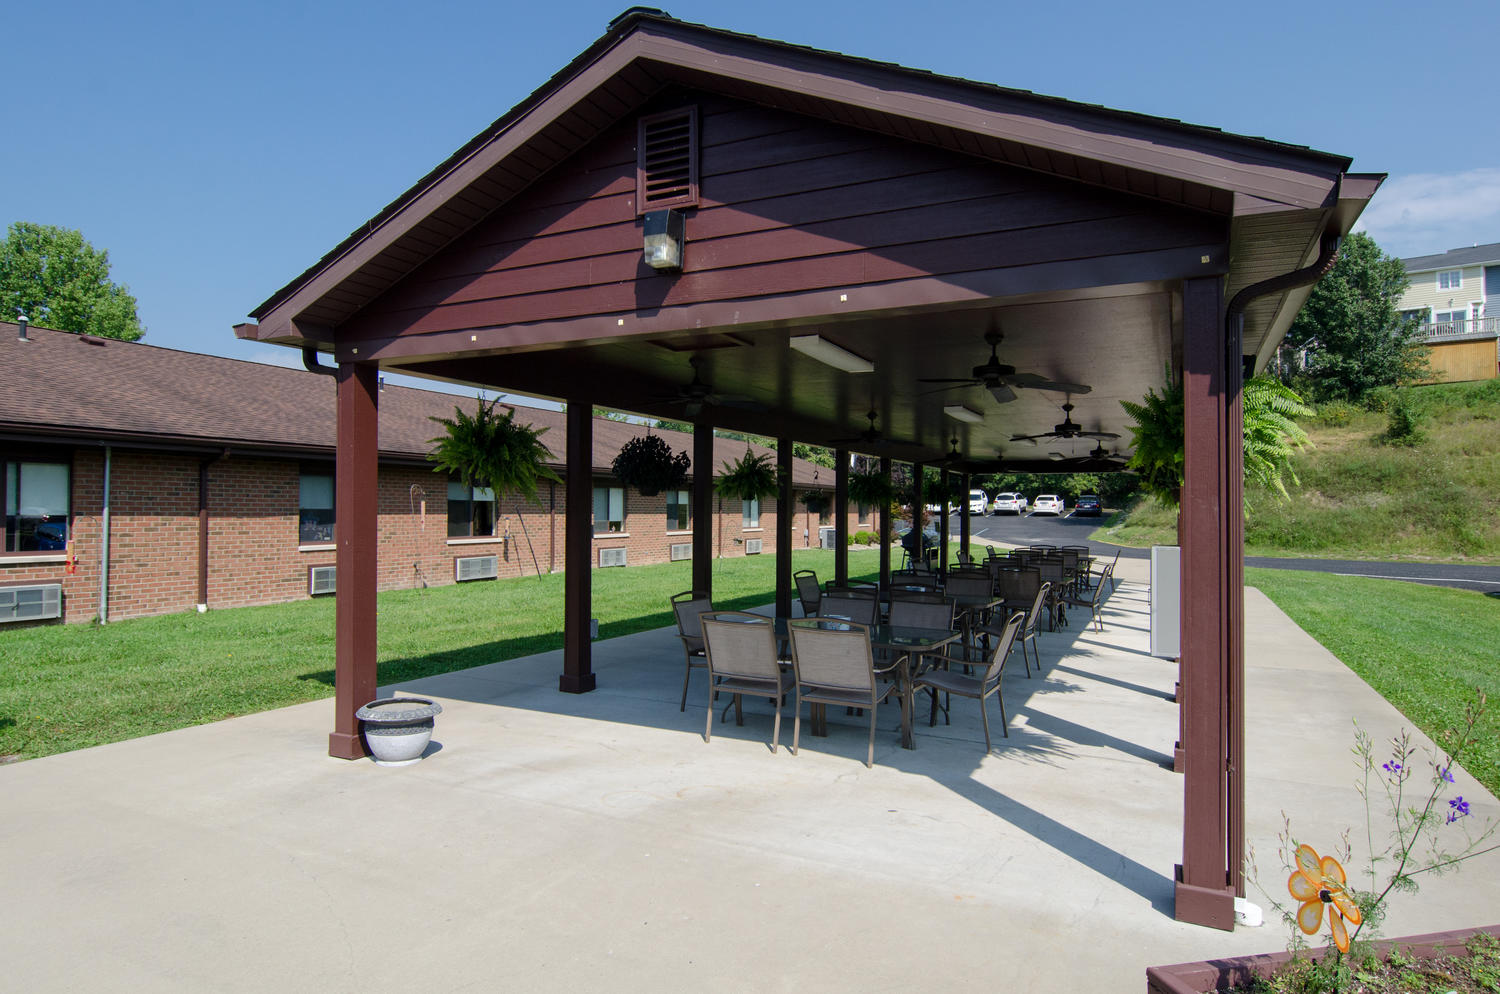 Outdoor pavilion at Stonerise Bridgeport with tables and hanging plants